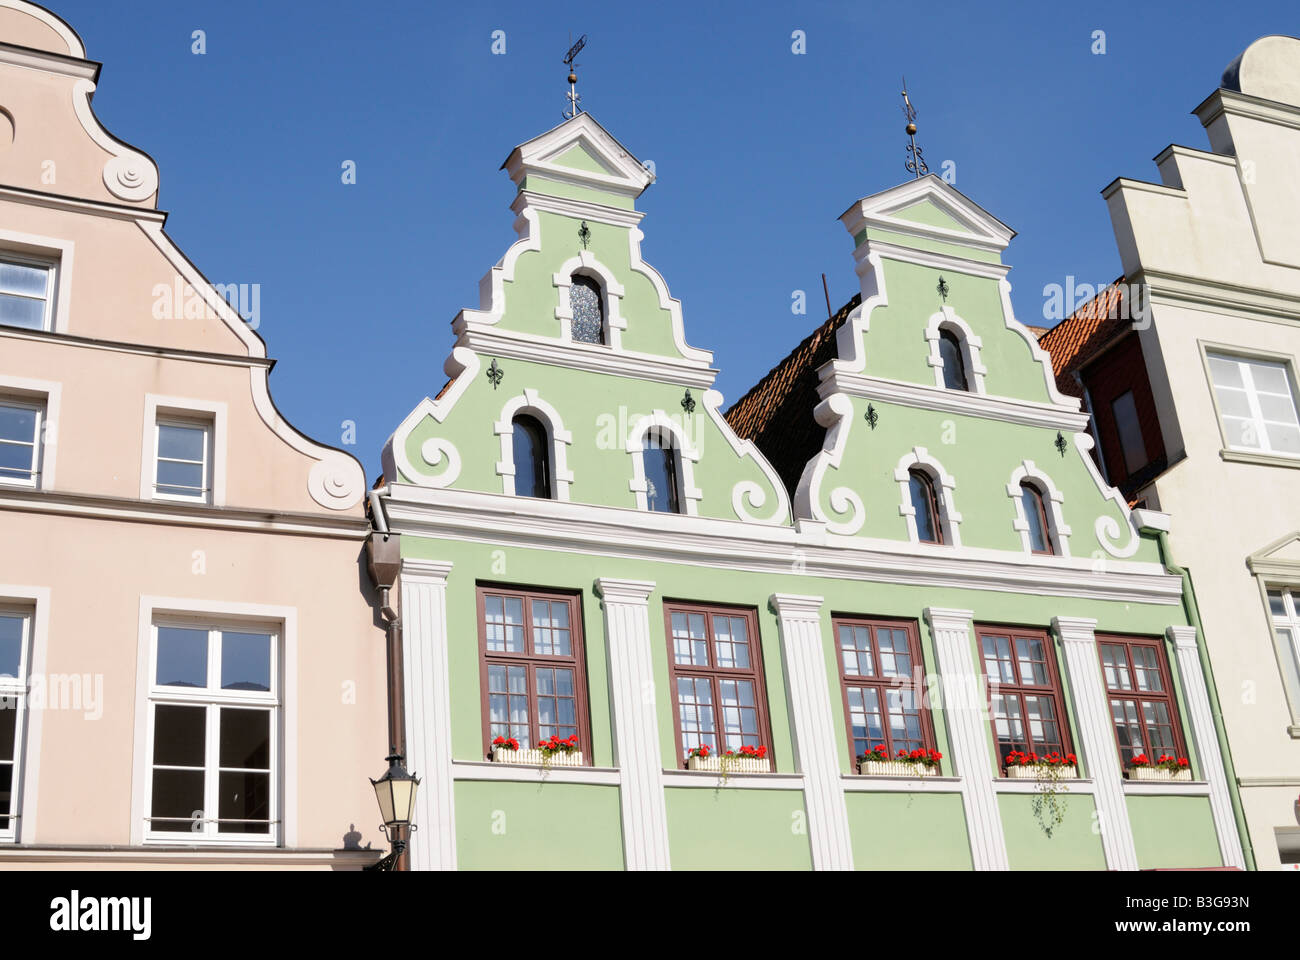 Doppelgiebelhaus in Wismar Deutschland Double gable house in Wismar Germany - Stock Image